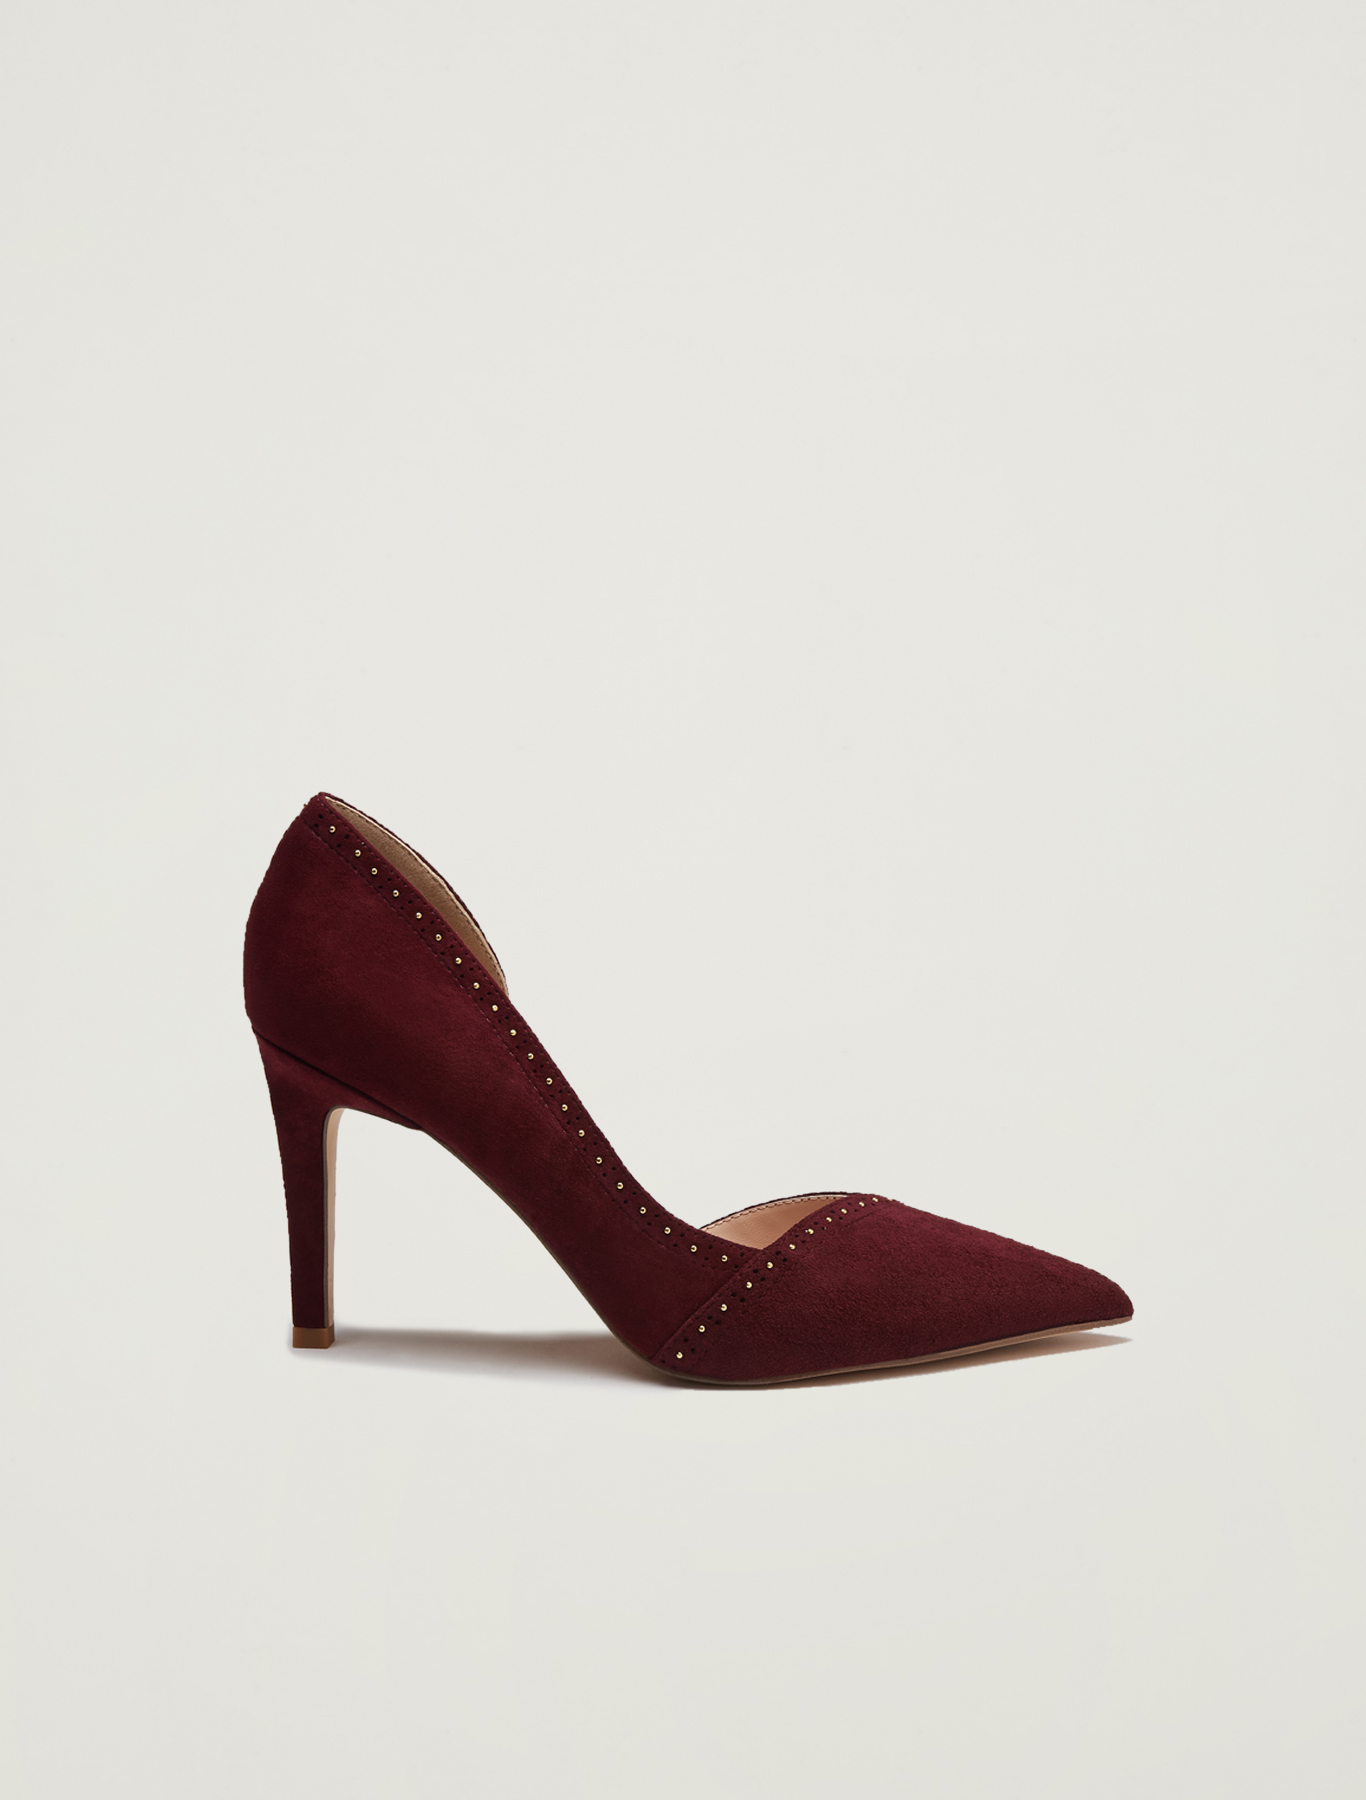 Suede pumps with micro studs - burgundy - pennyblack